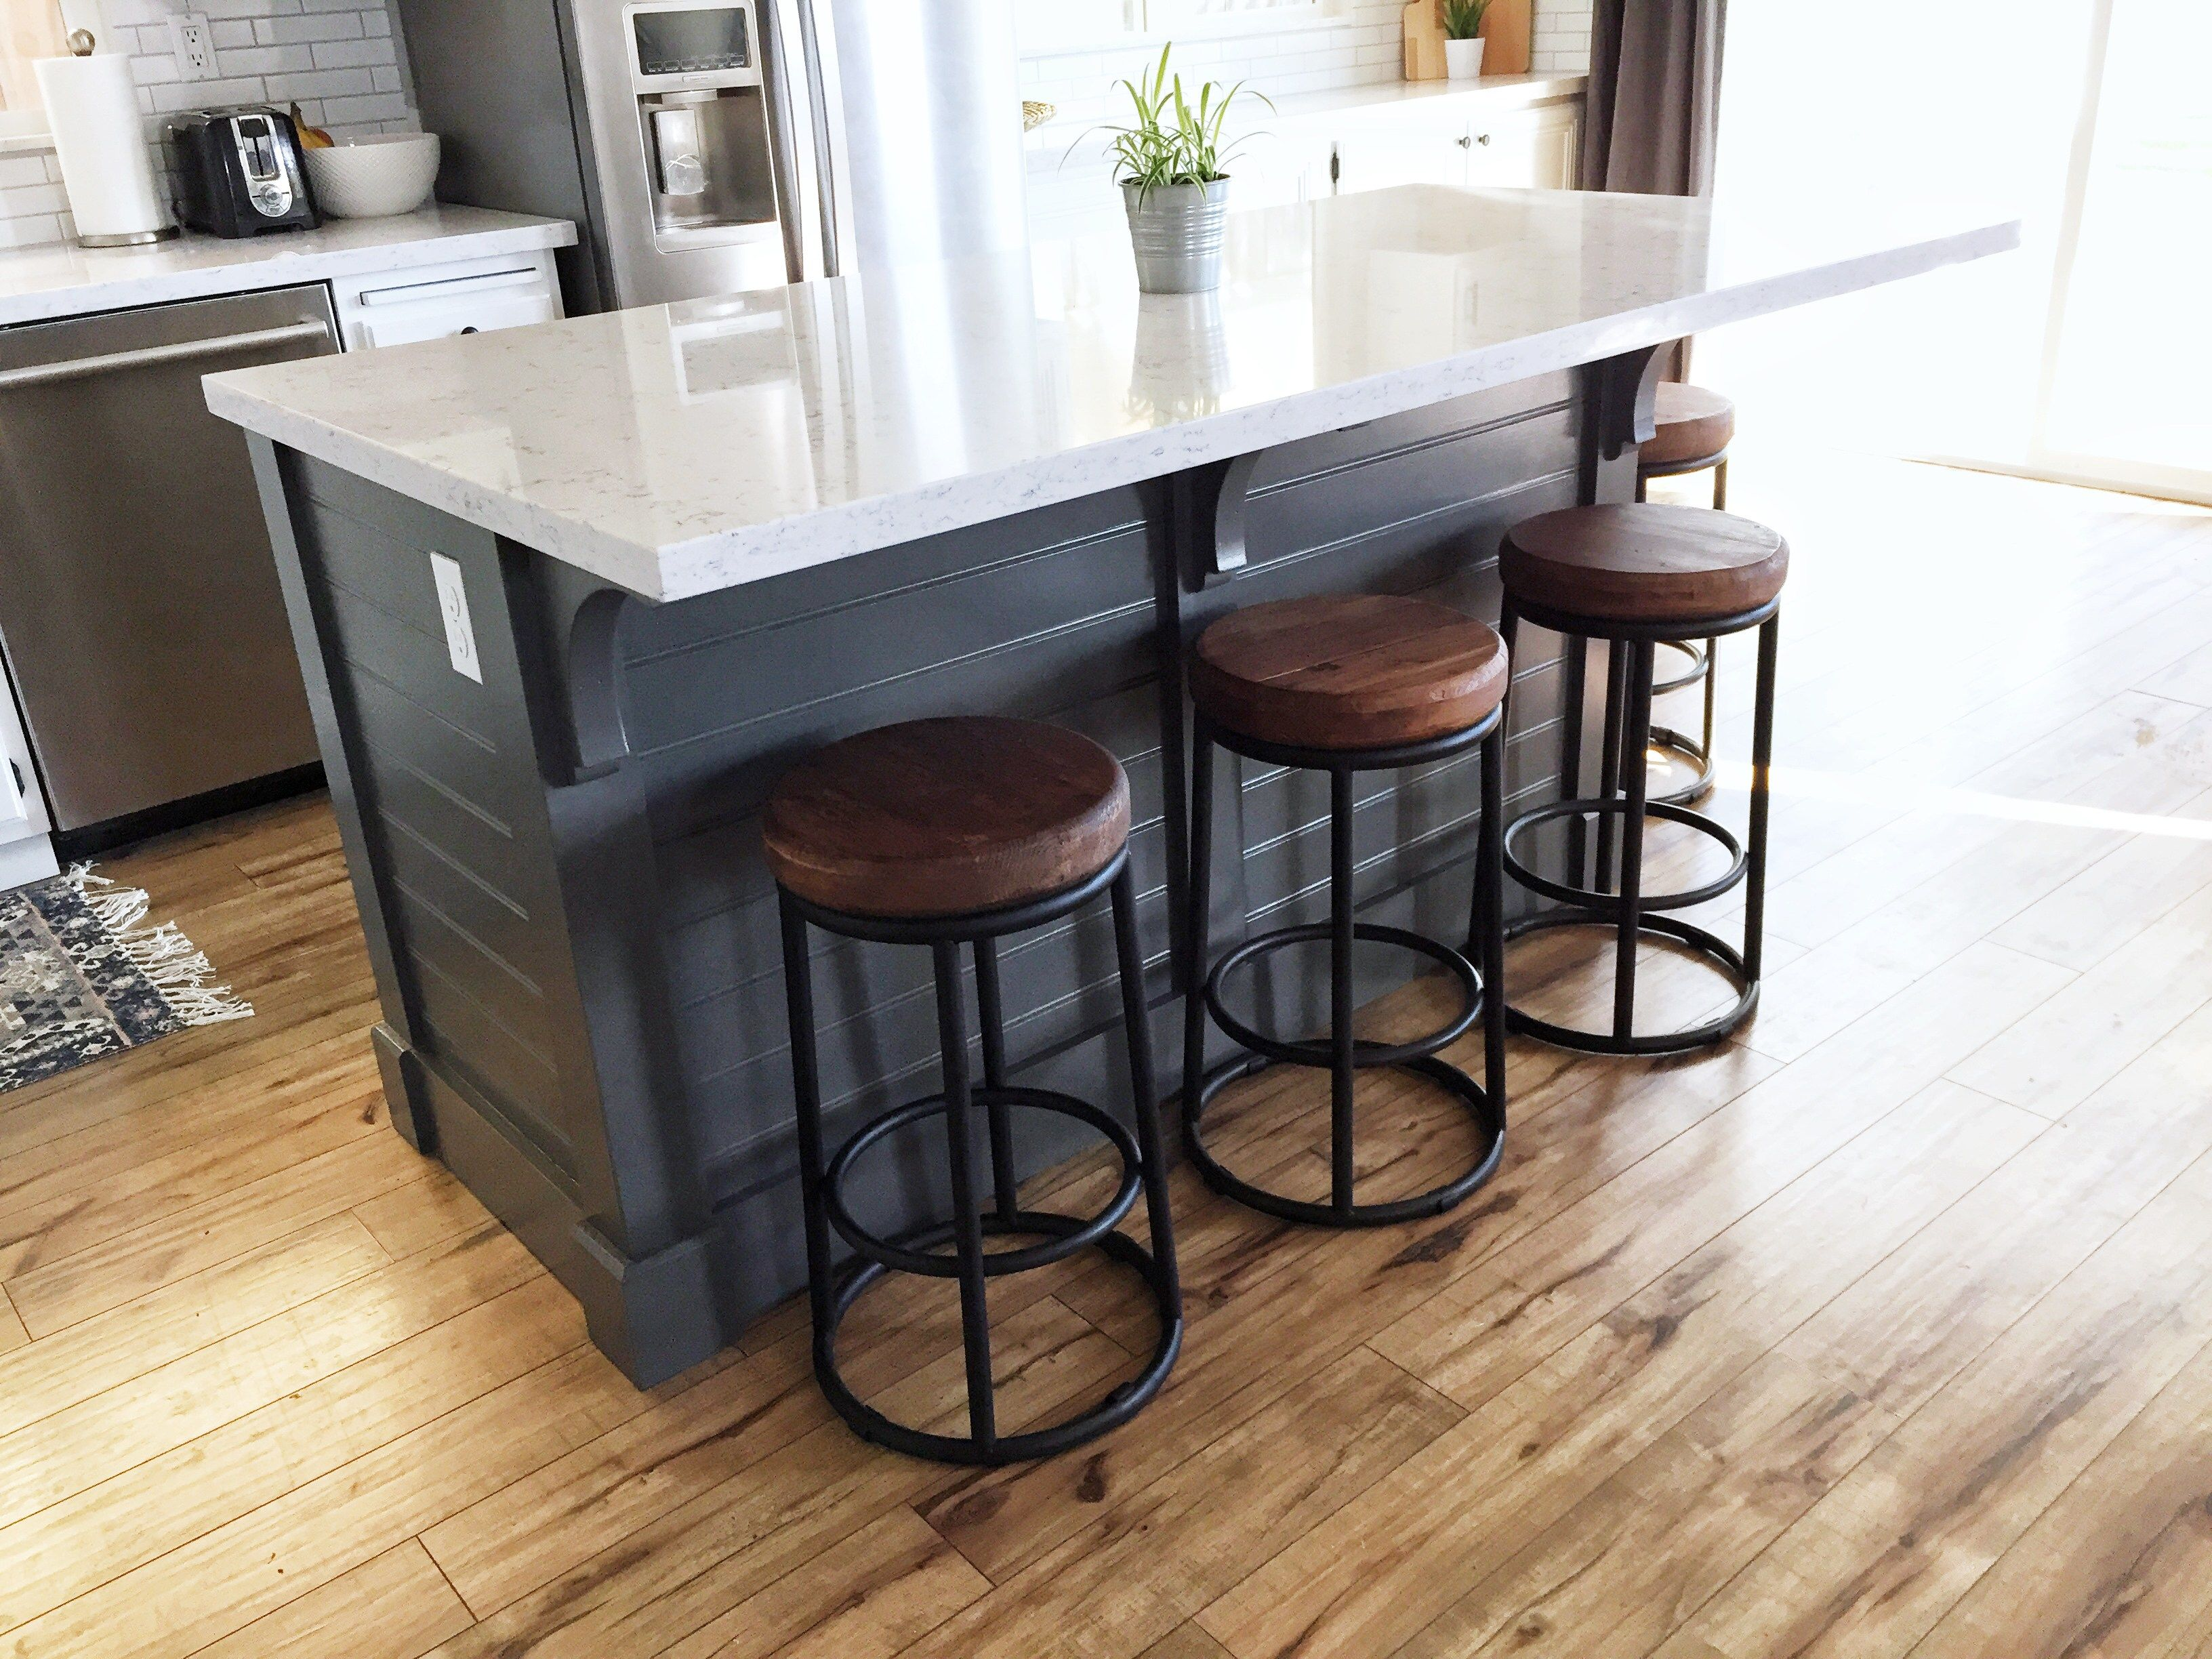 Kitchen Island Make It Yourself Save Big Pinterest Kitchens Diy Kitchen Island And